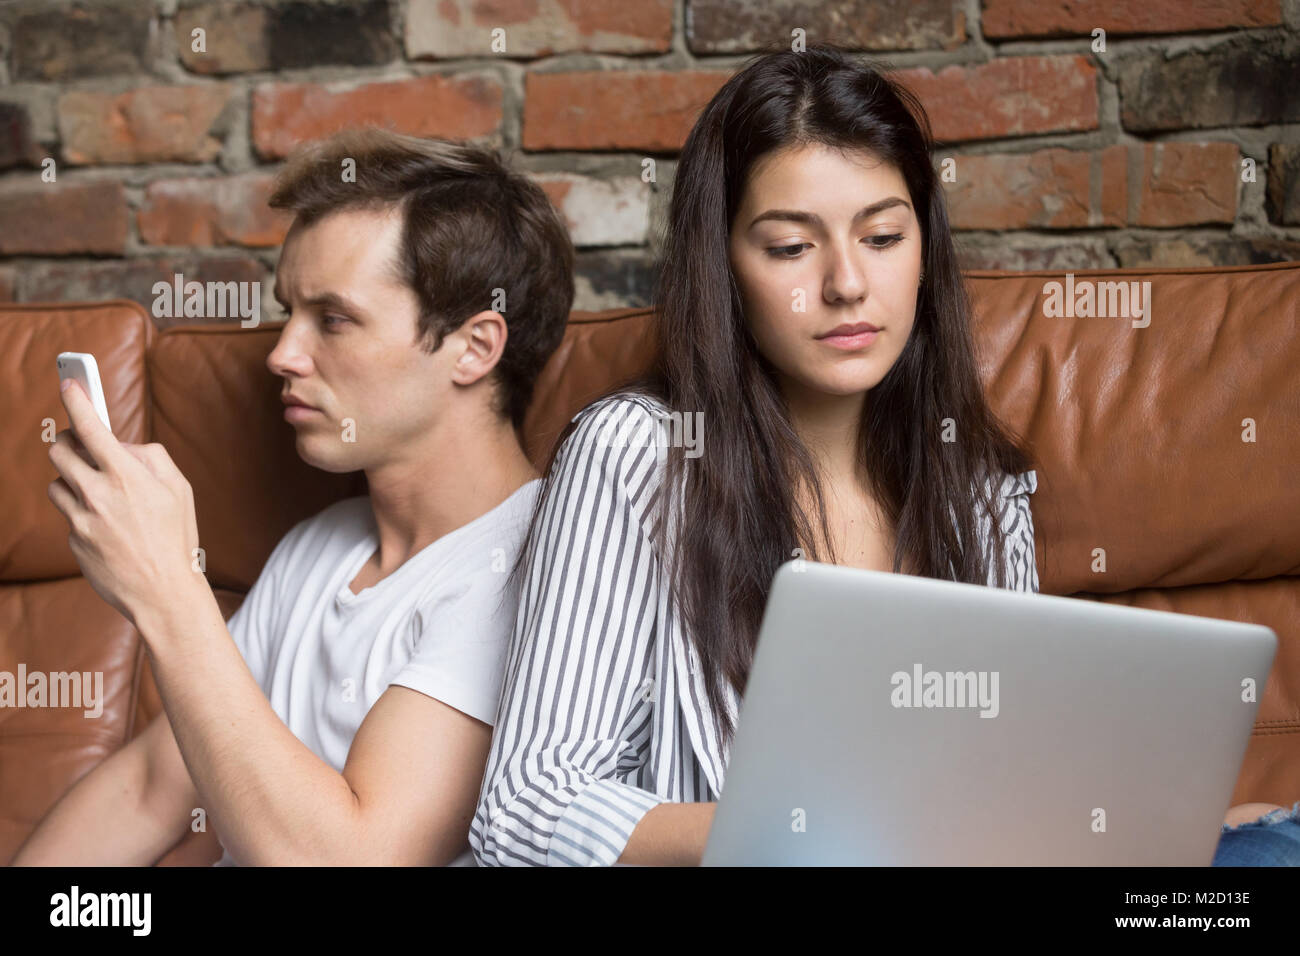 Young couple sitting on couch addicted obsédé par gadg moderne Photo Stock